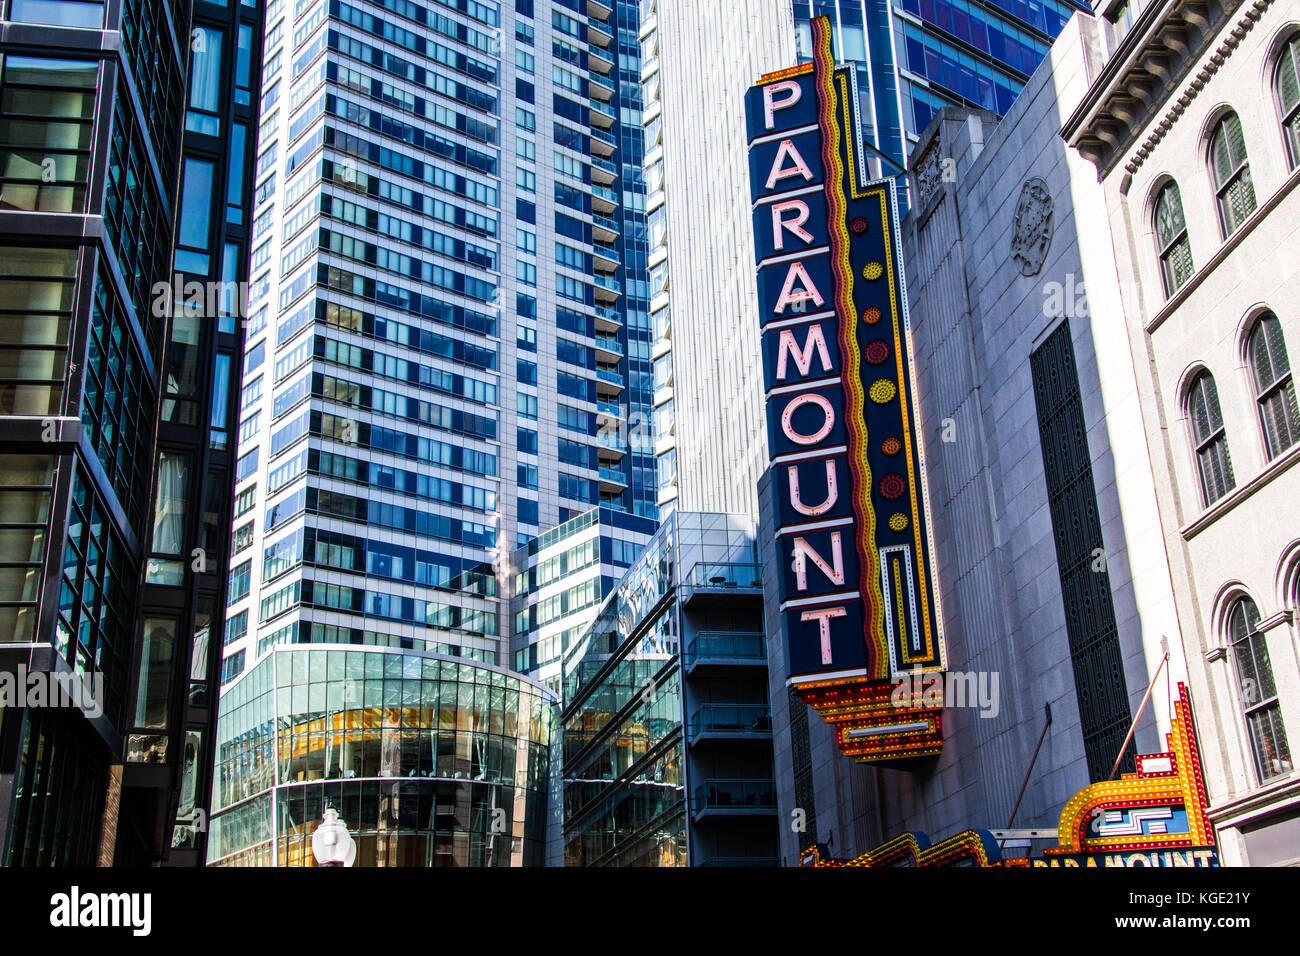 The Paramount Theatre in downtown Boston, MA, USA - Stock Image